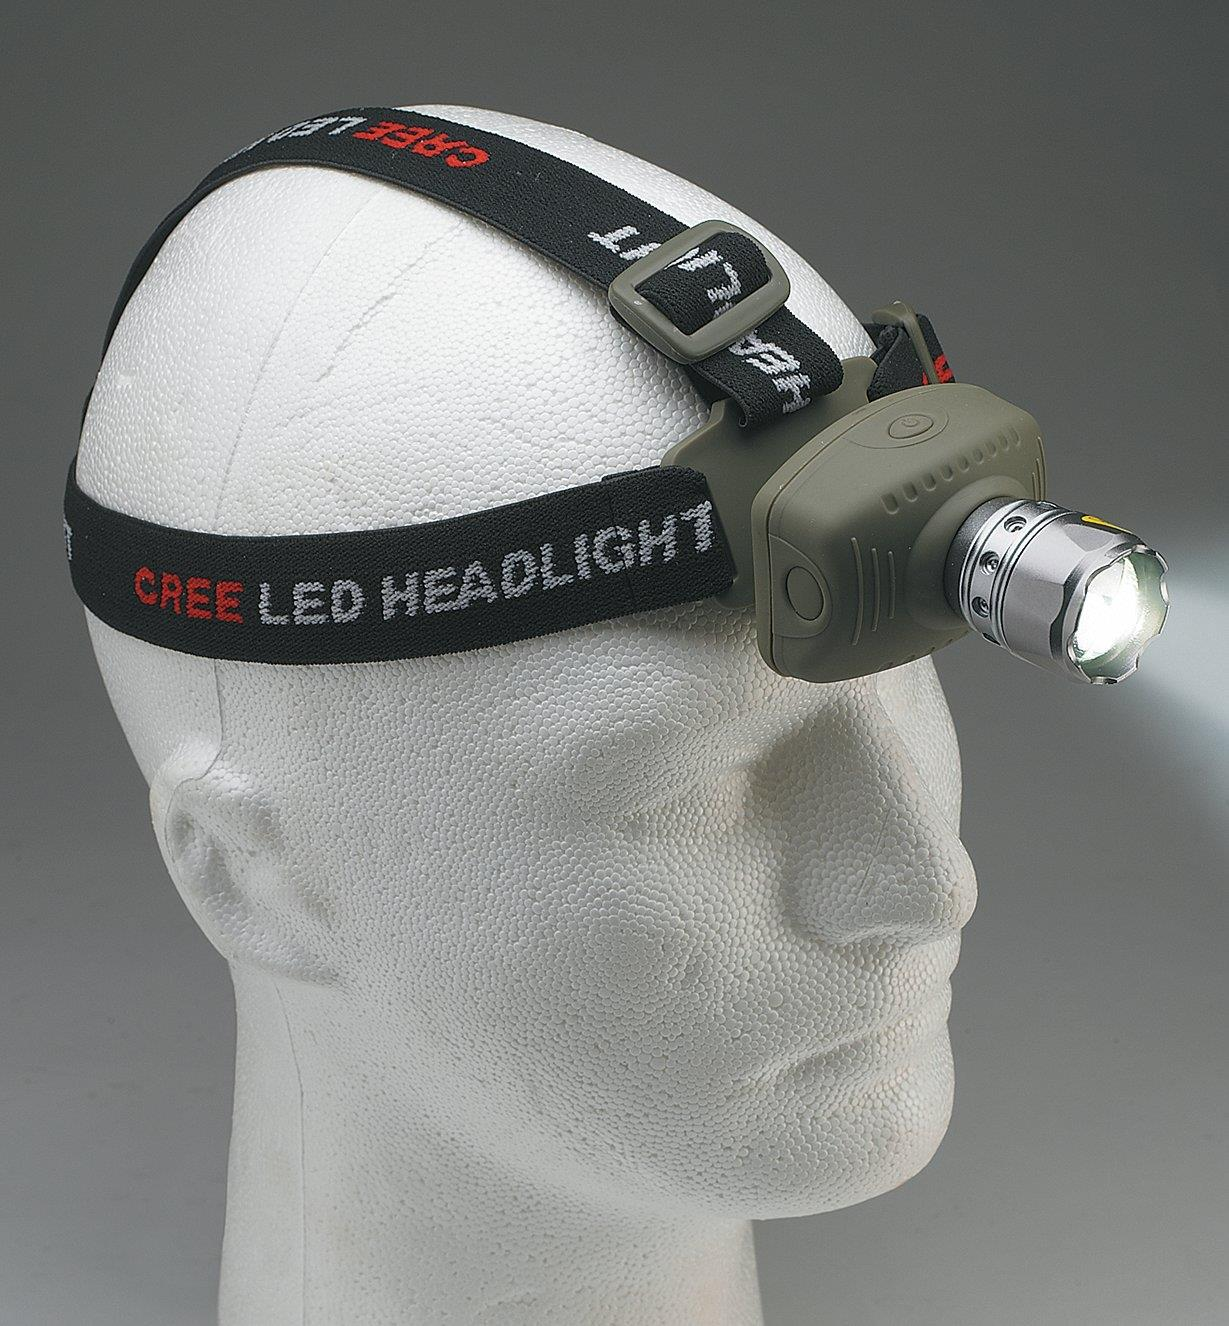 45K1702 - Cree LED Headlamp